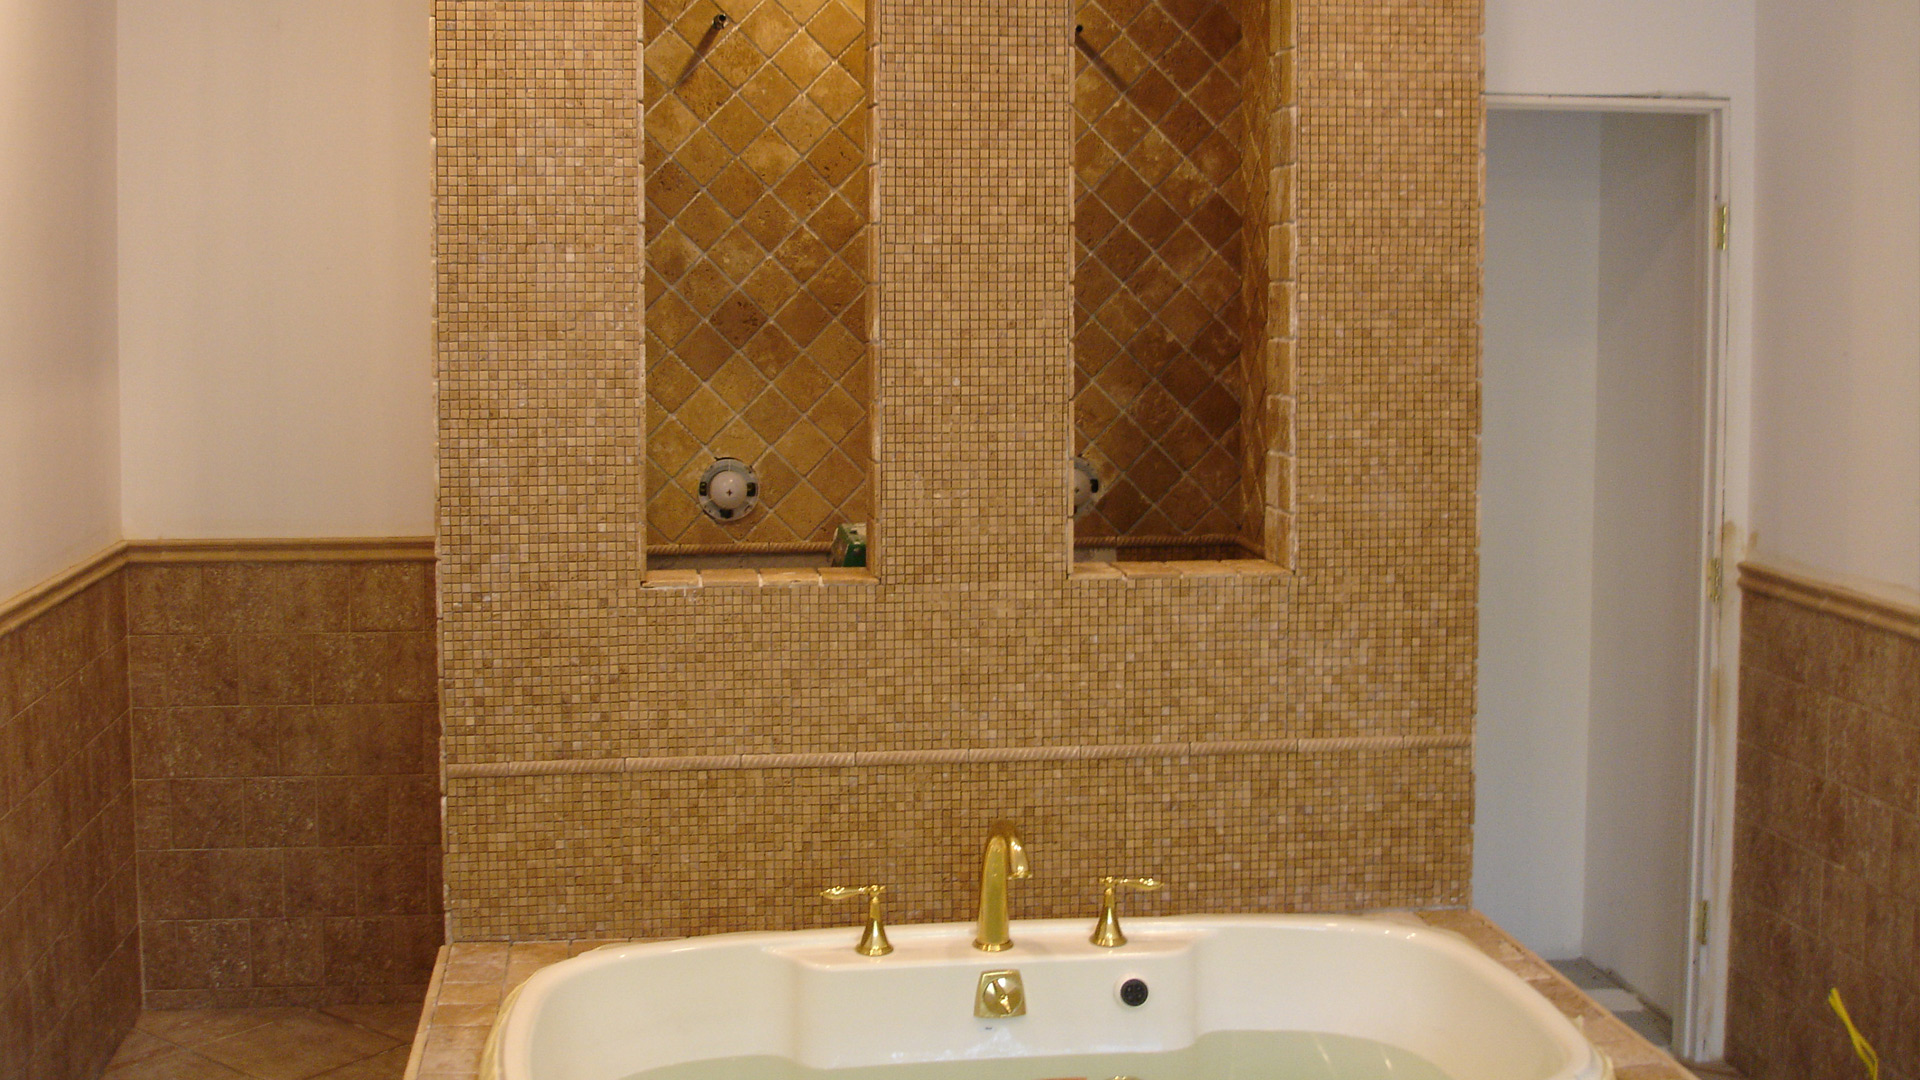 Hartsdale Remodeling: Kitchen Remodeling, Bathroom Remodeling and ...